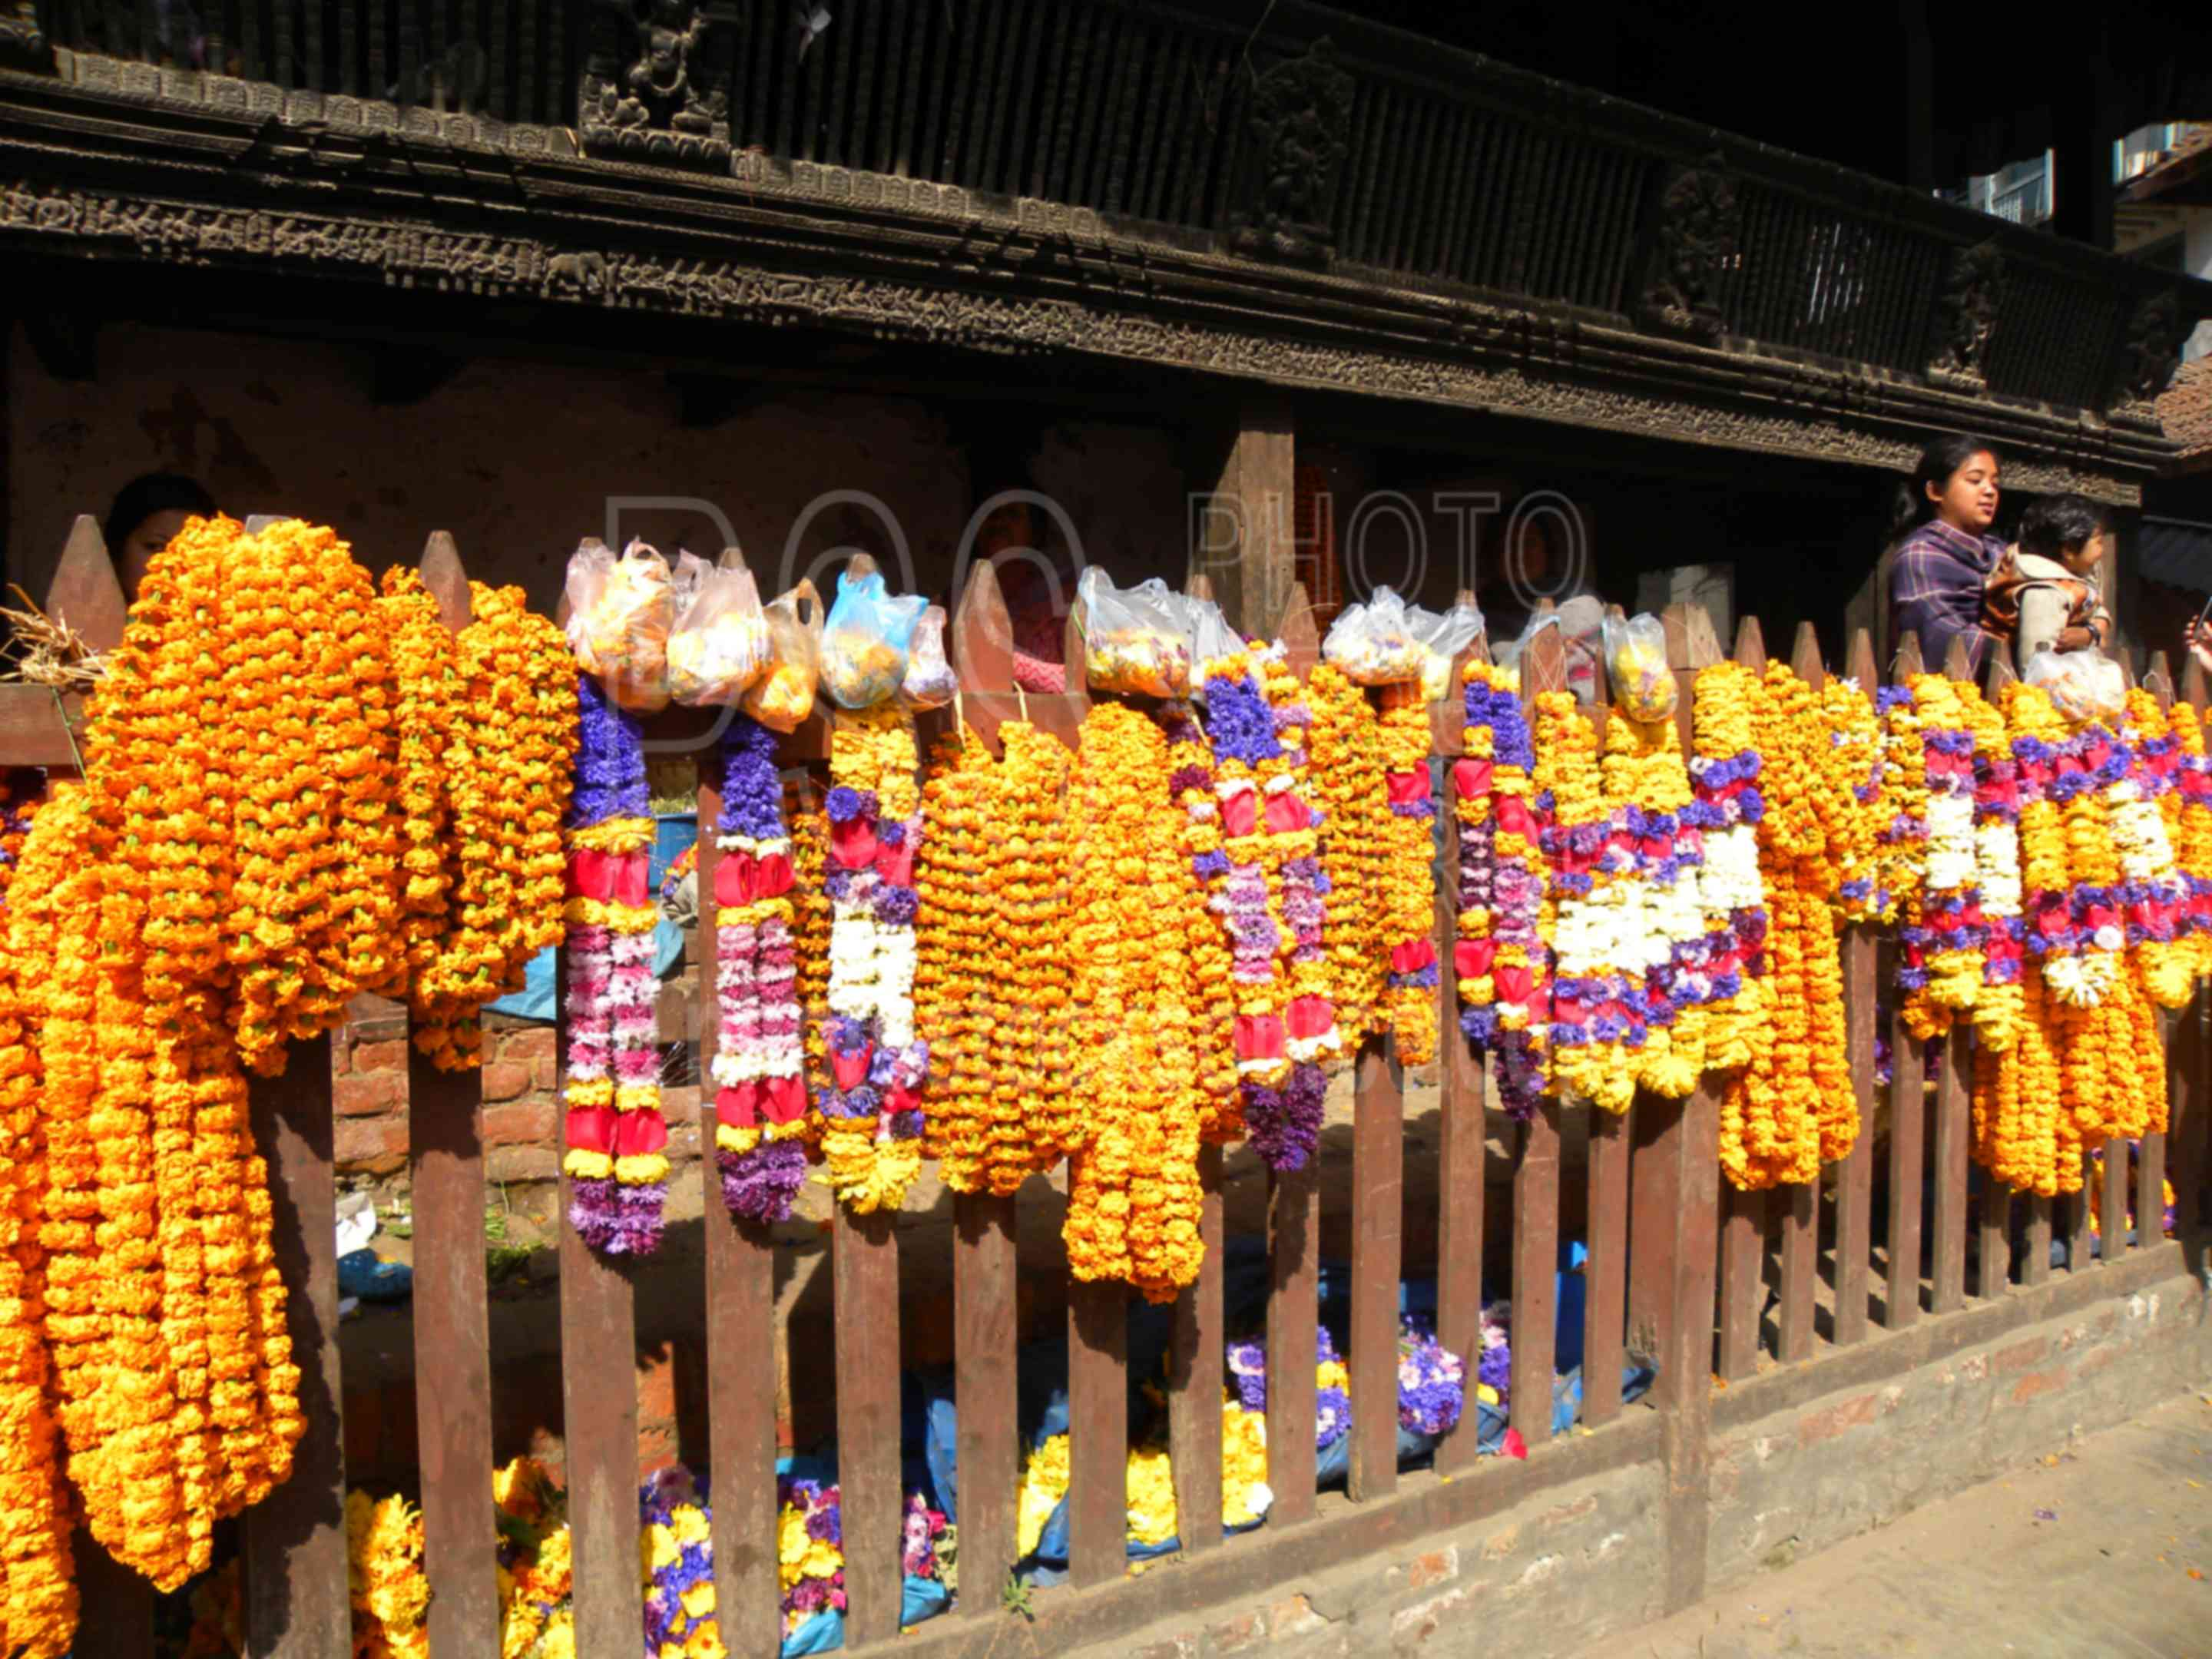 Ceremonial Flower Garlands,celebration,festival,colors,flowers,garlands,vendor,sale,temple,temples,plants